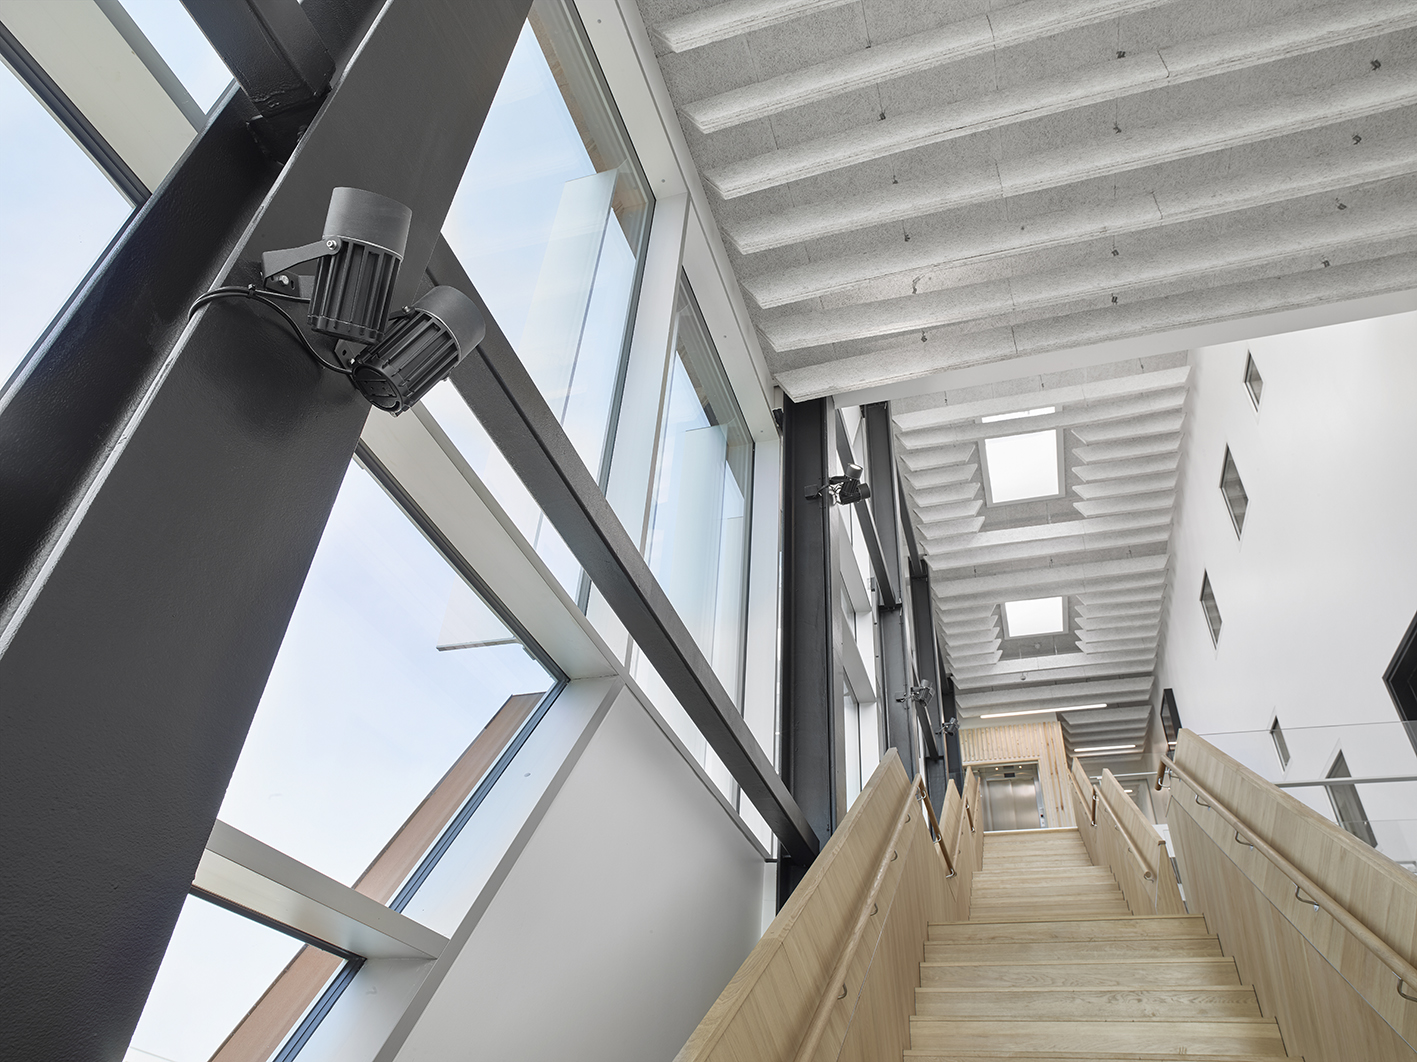 VUC Flow Factory i Haderslev, Indbygget i loft Matric 55mm Surface A3 ved trappe